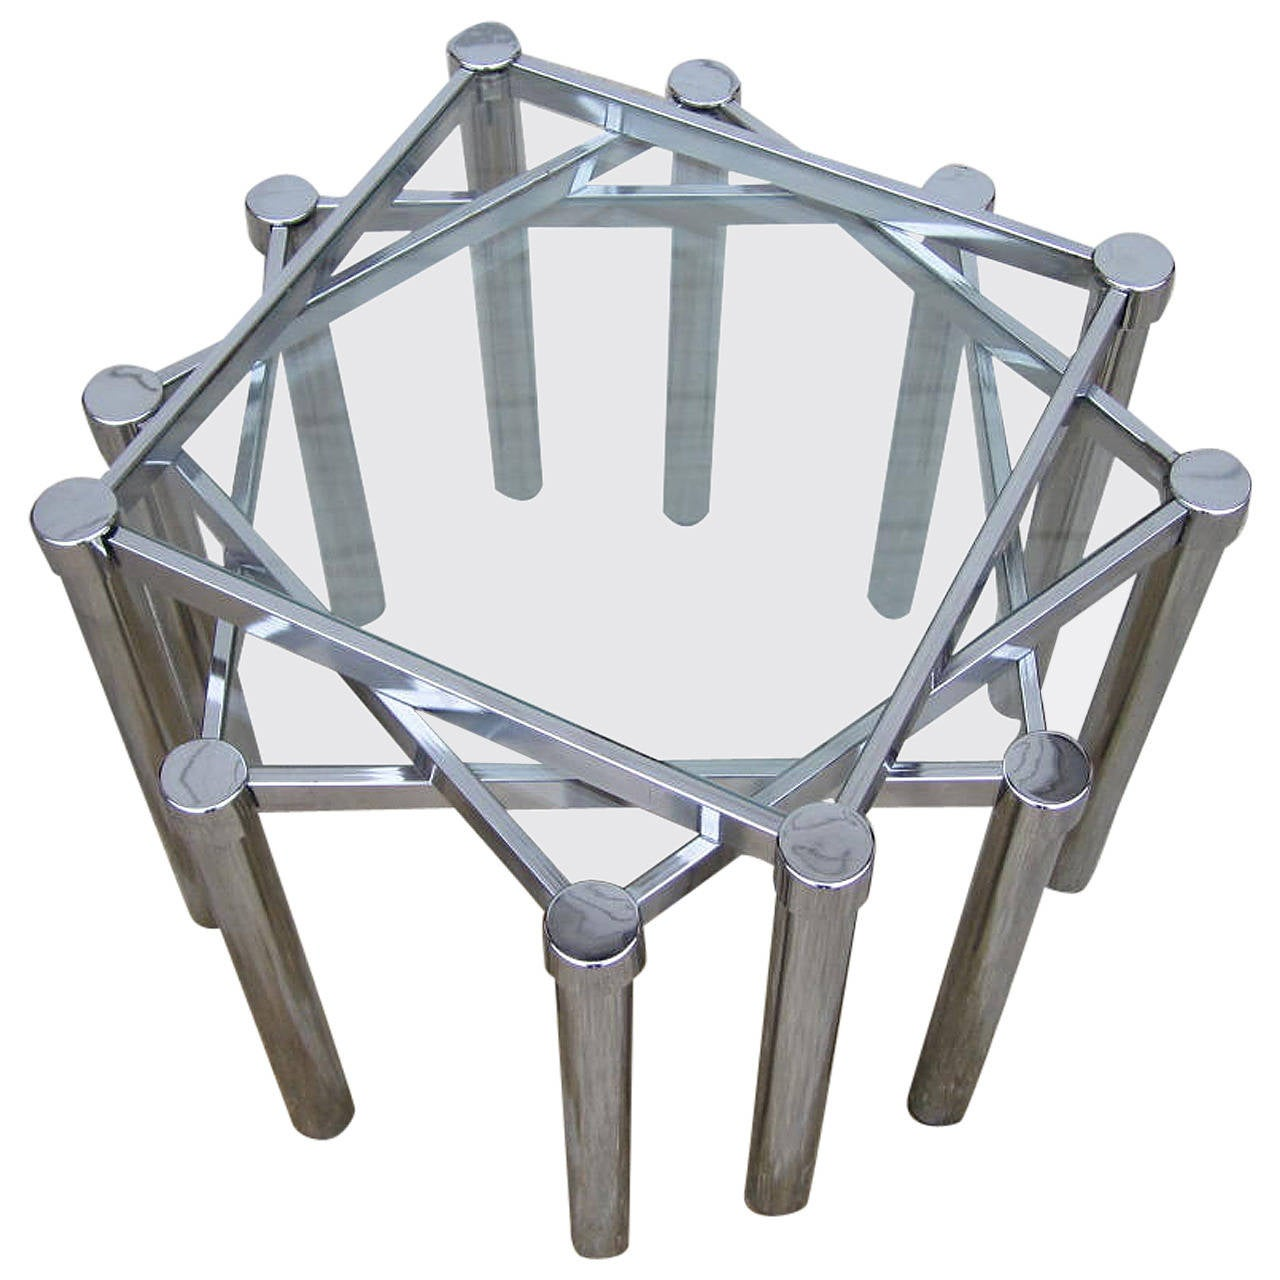 Fun set of milo baughman style square chrome and glass stacking fun set of milo baughman style square chrome and glass stacking nesting tables 1 geotapseo Image collections